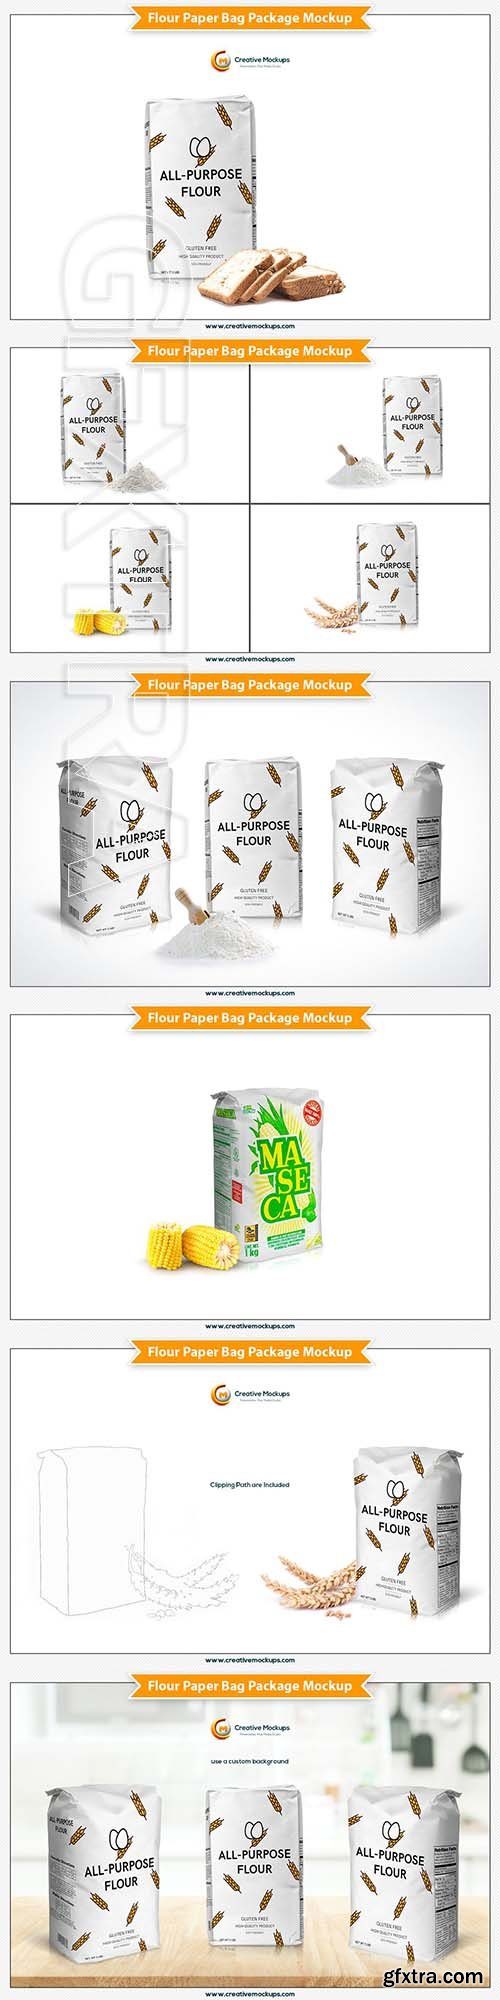 CreativeMarket - Flour Paper Bag Package Mockup 3746813